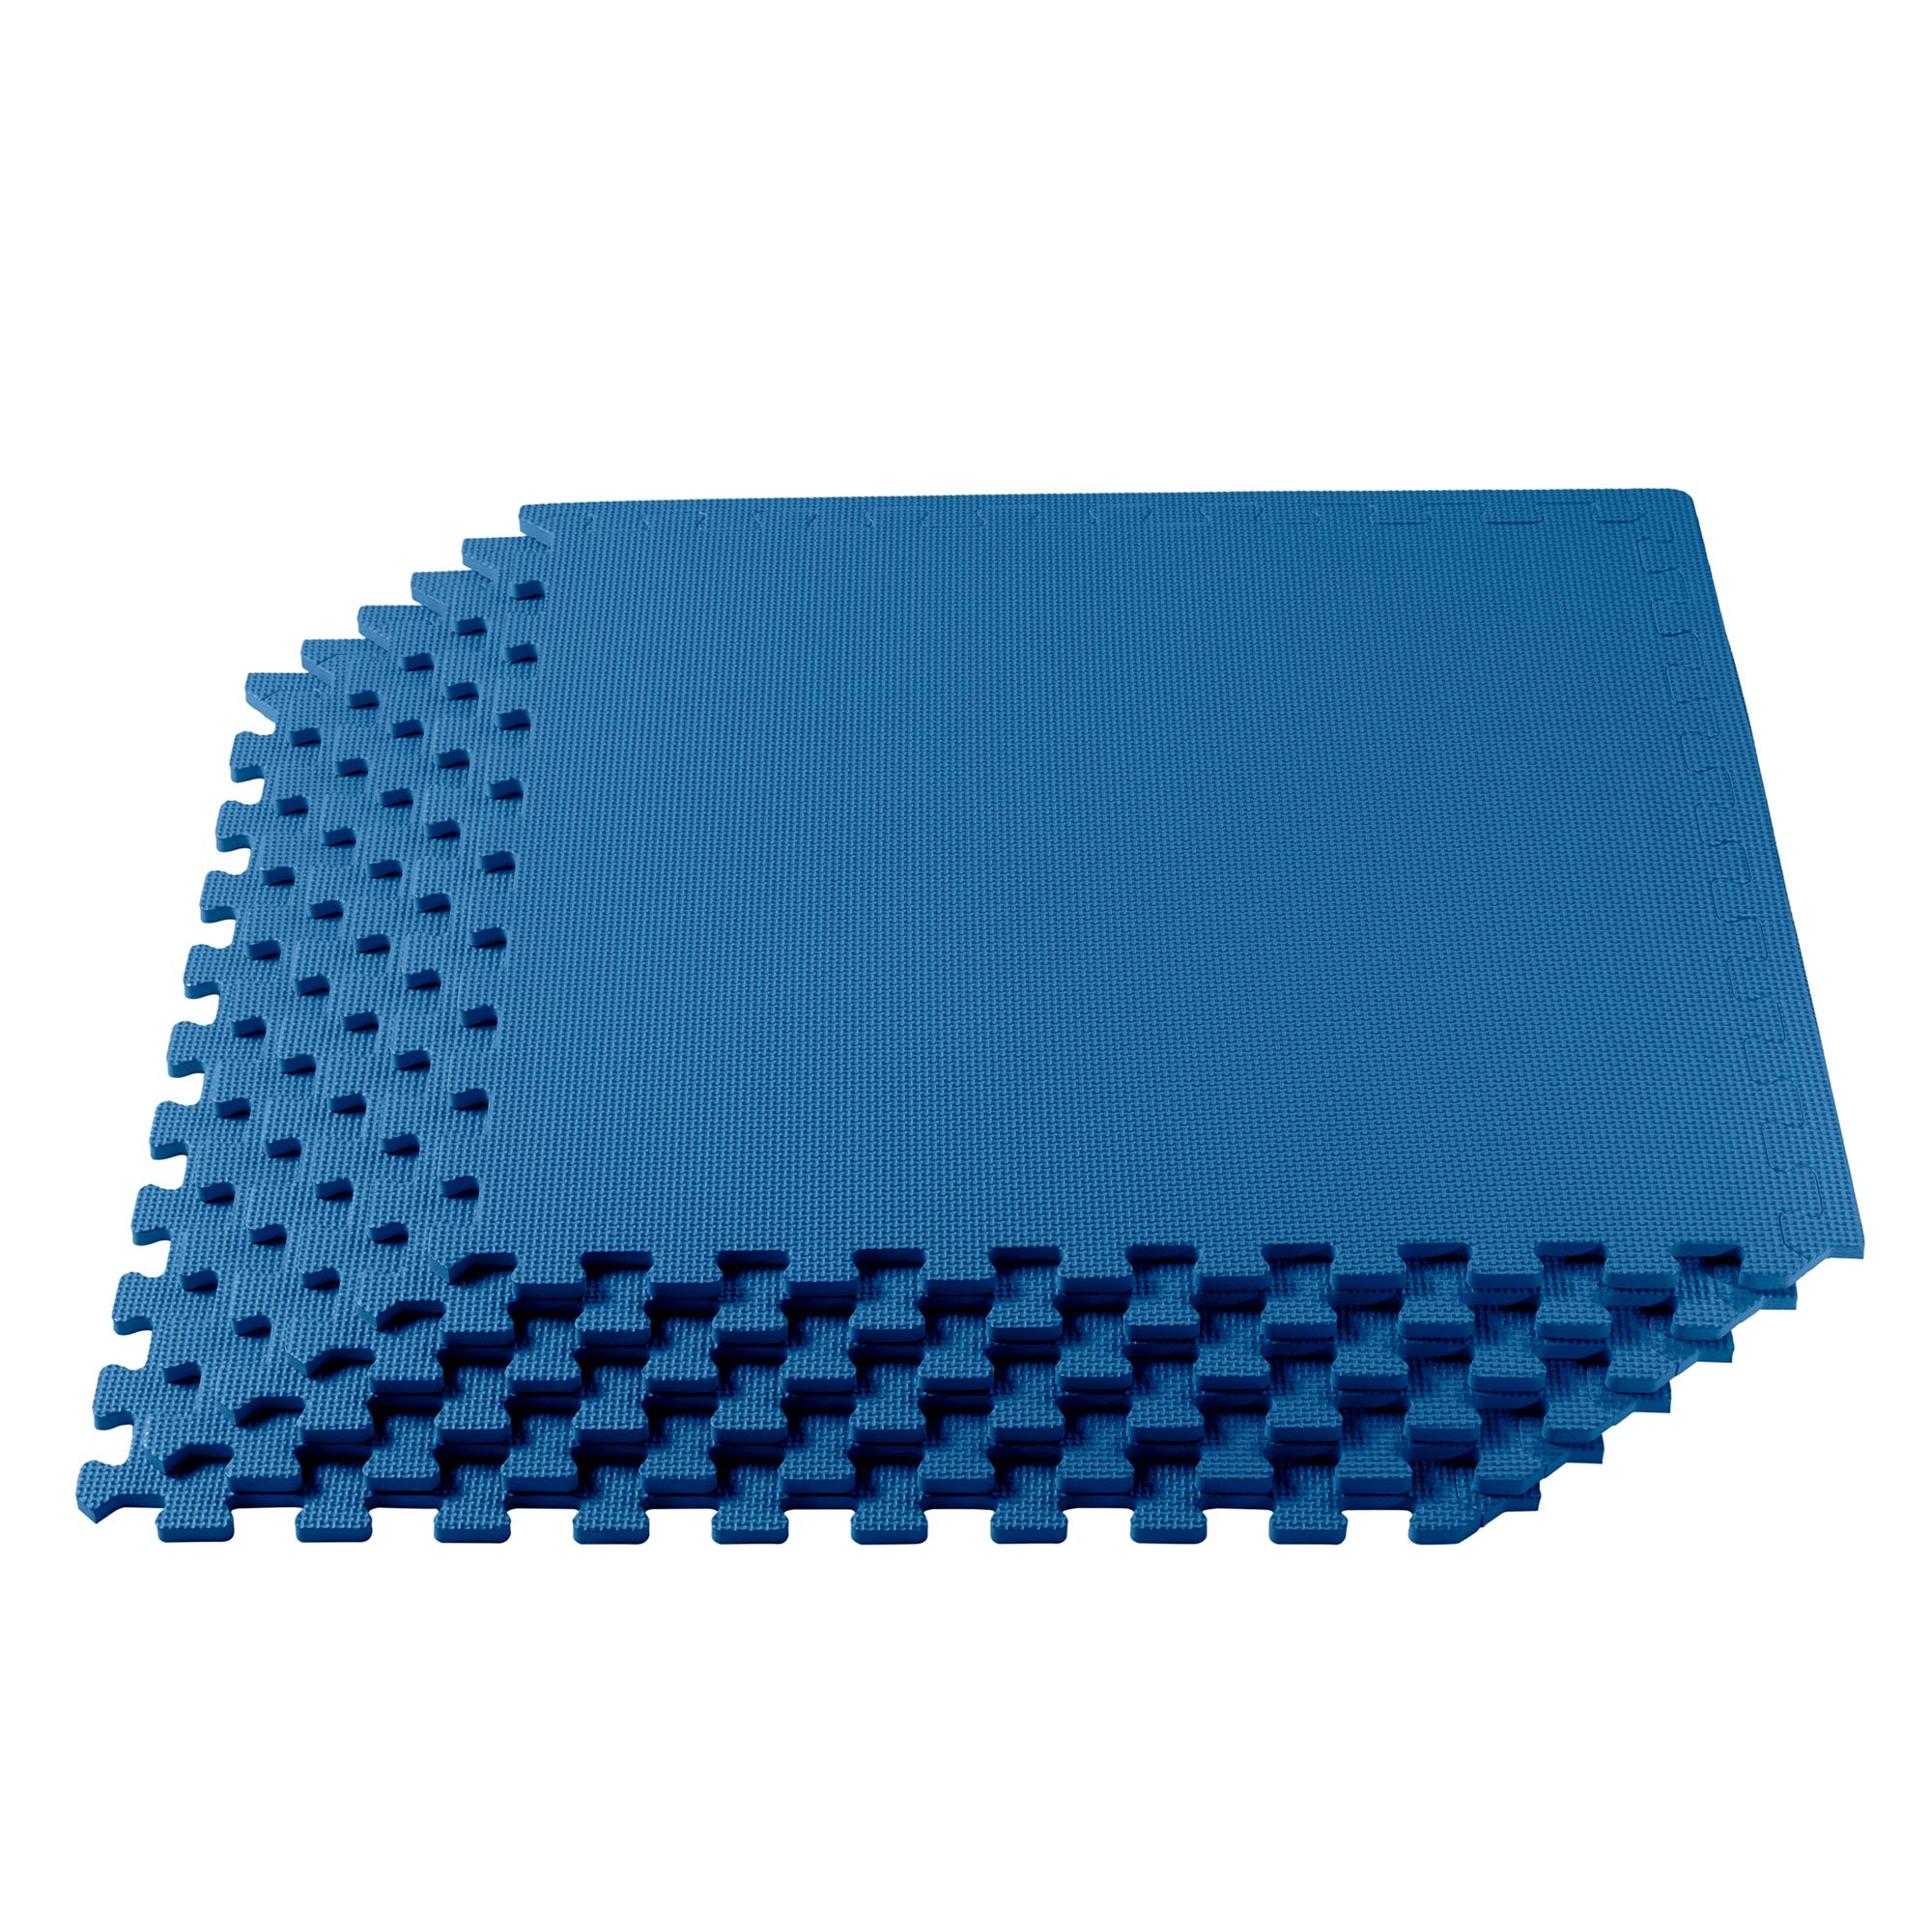 We Sell Mats Multipurpose Exercise Floor Mat with EVA Foam, Interlocking Tiles, Anti-Fatigue, for Home or Gym, 16 Square Feet (4 Tiles), 24 x 24 x 3/8 Inches, Blue